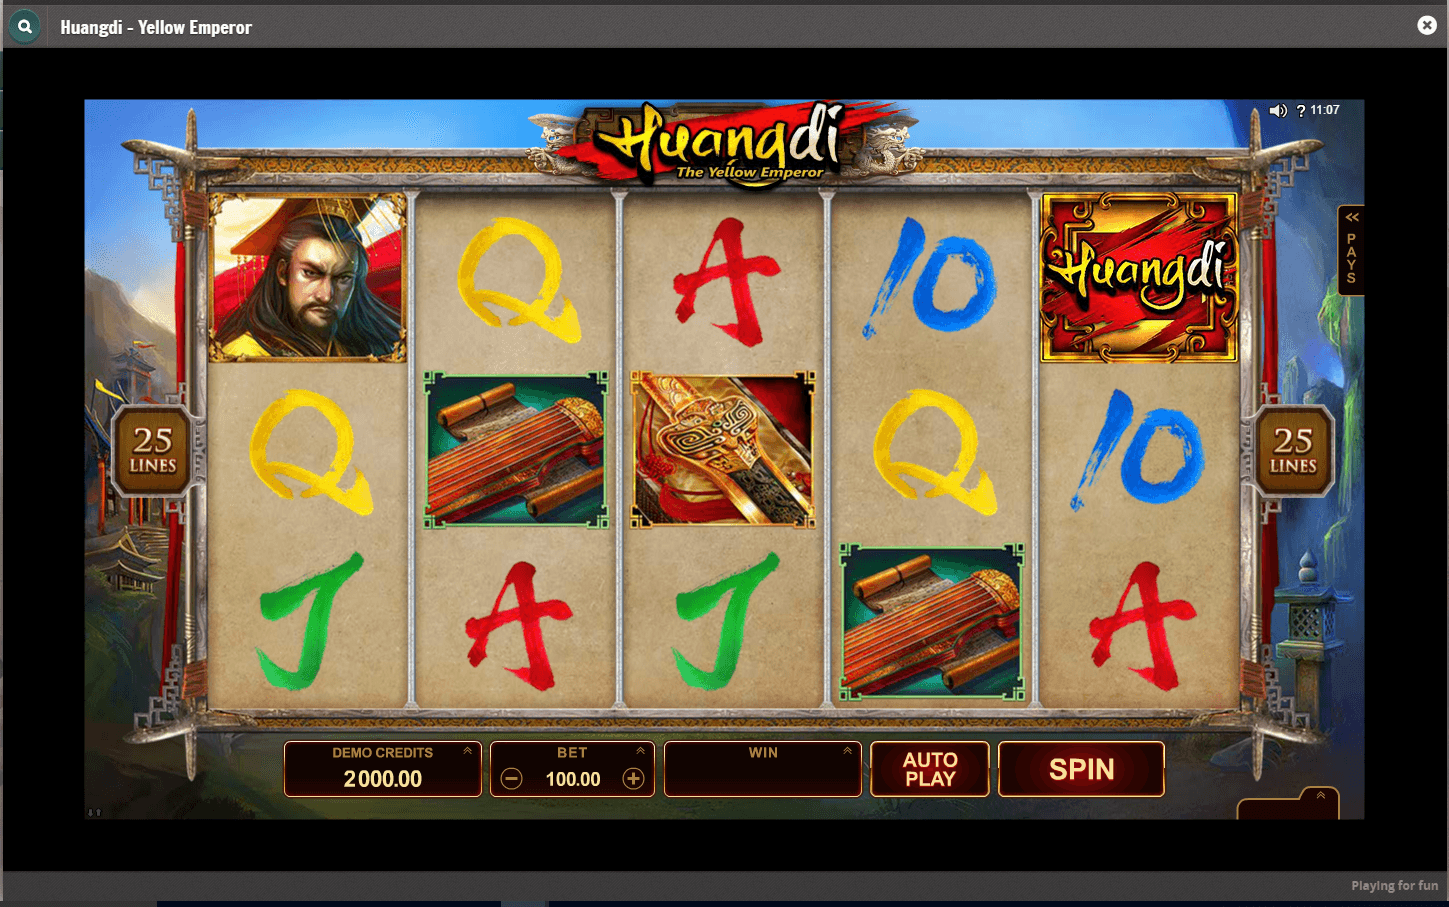 Cherry Casino - Huangdi slot game